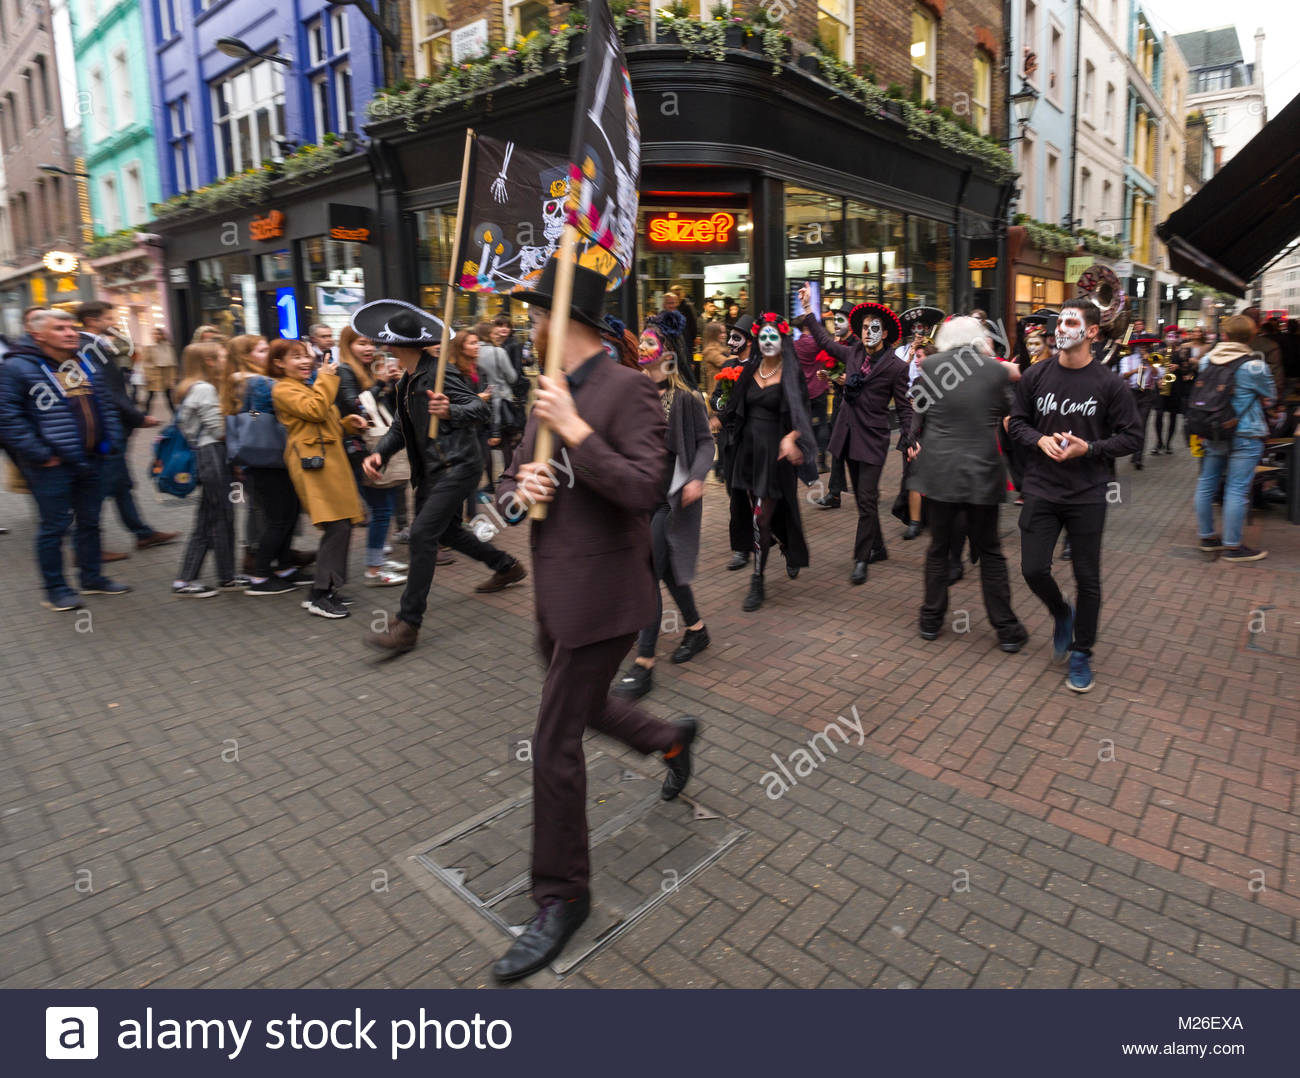 Small parade of people and musicians wearing makeup to make their faces look like skulls along the Carnaby Street - Stock Image